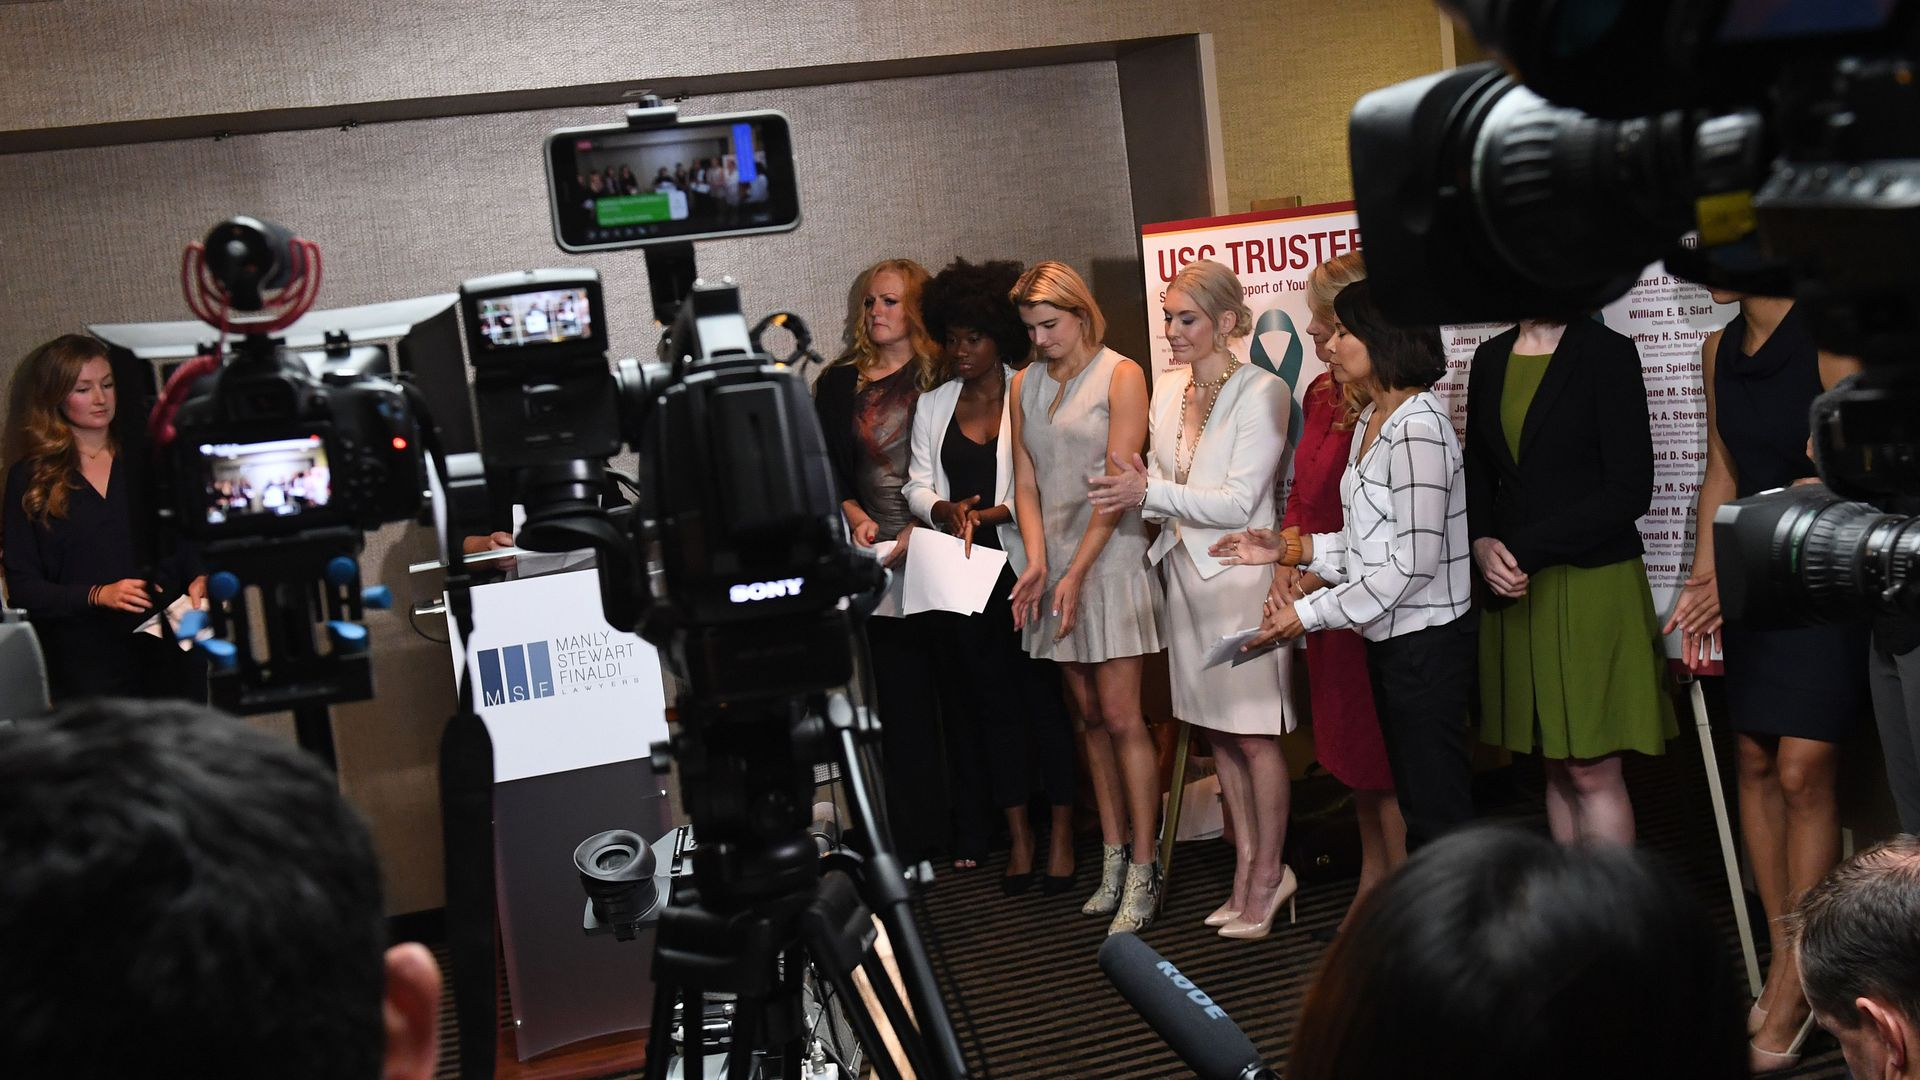 A group of young women stand in front of cameras.